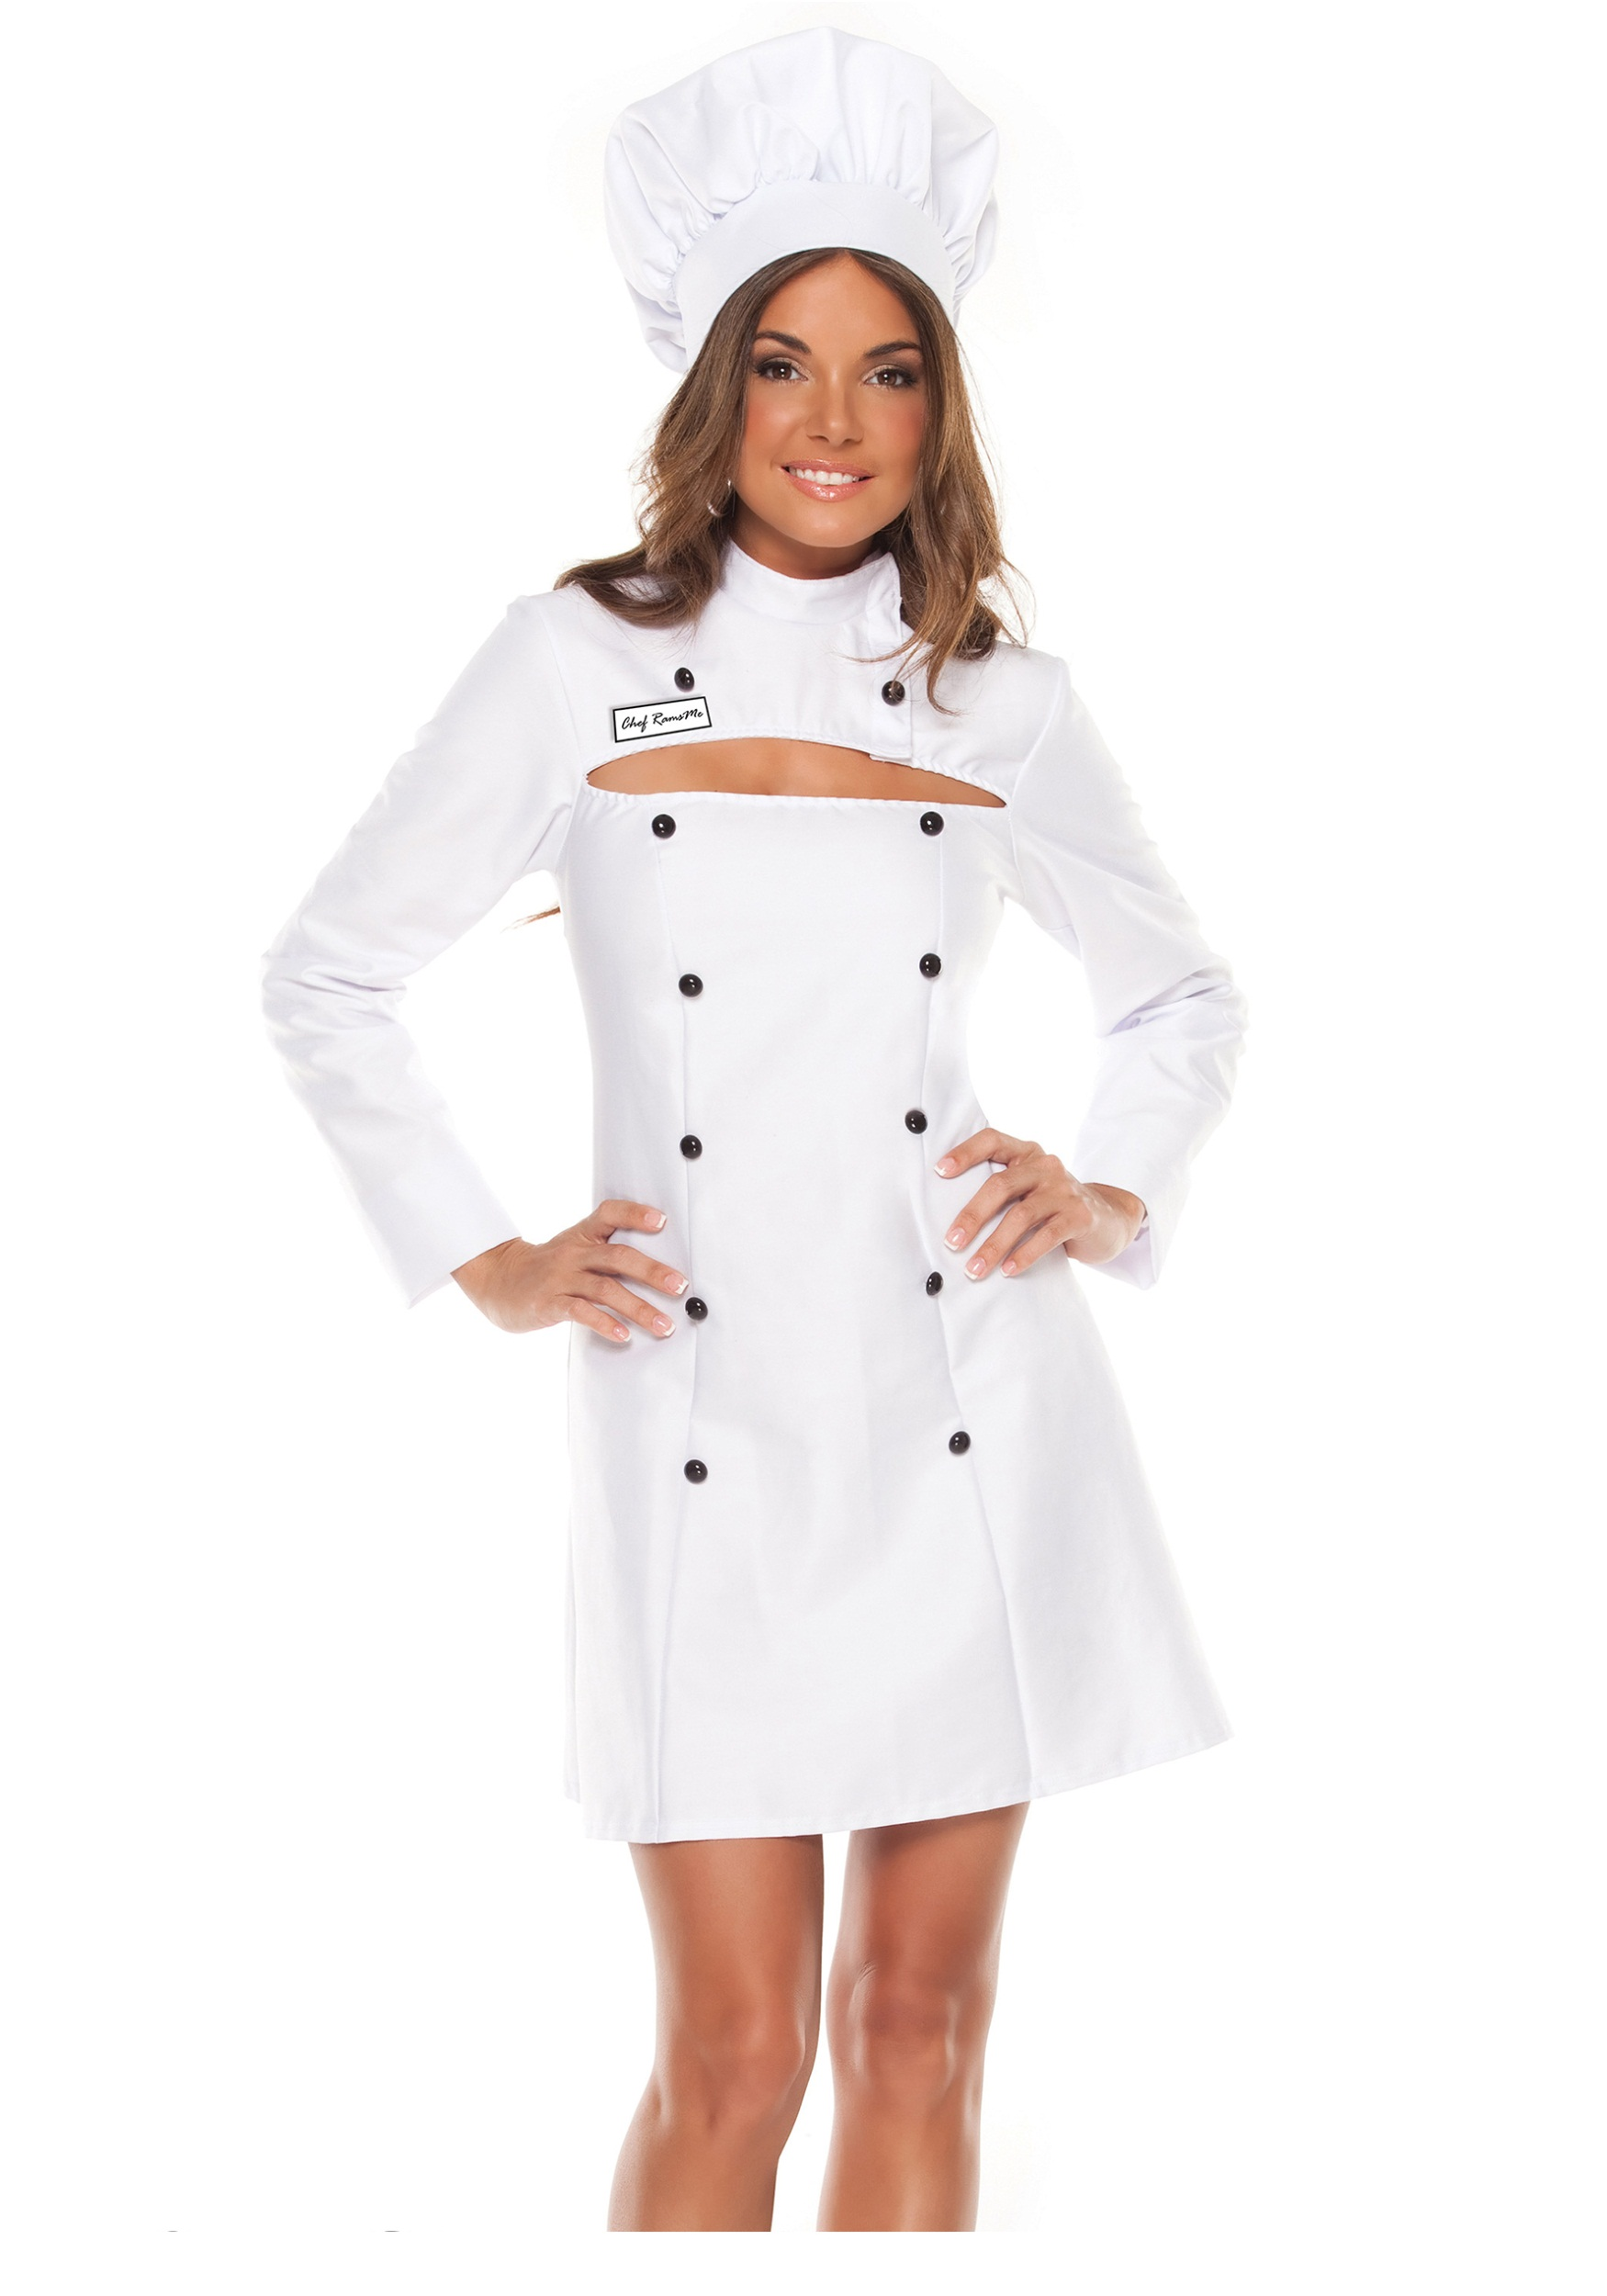 Womens Plus Size Chef Costume  sc 1 st  Walmart & Womens Plus Size Chef Costume - Walmart.com